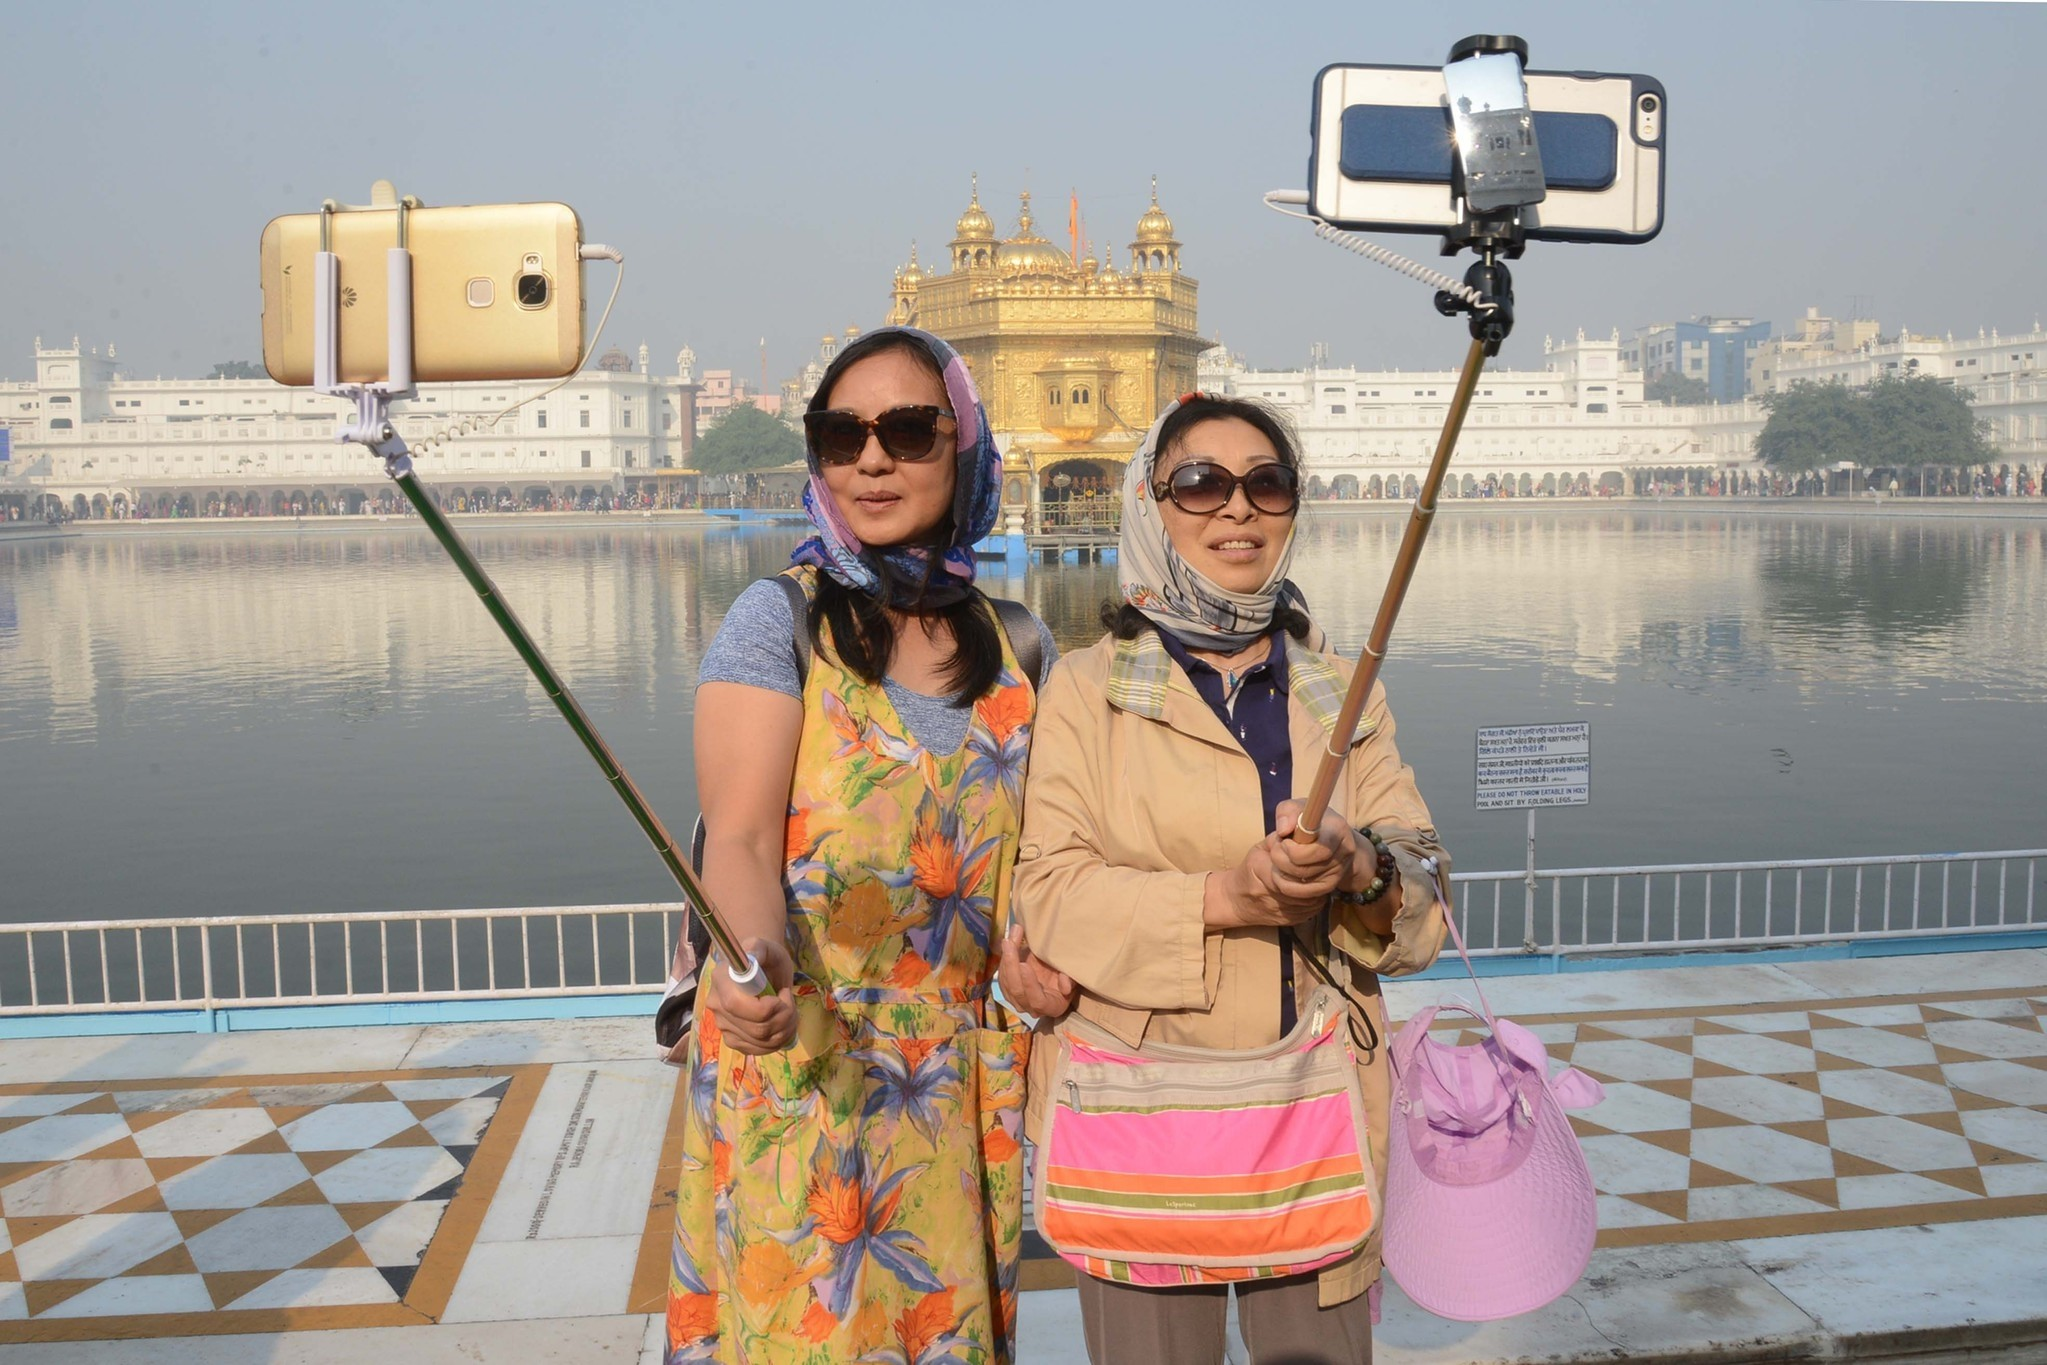 Chinese tourists take a 'selfie' at the Golden Temple in Amritsar on November 14, 2016, as Sikh devotees mark the 547th birth anniversary of Sri Guru Nanak Dev. (AFP Photo)